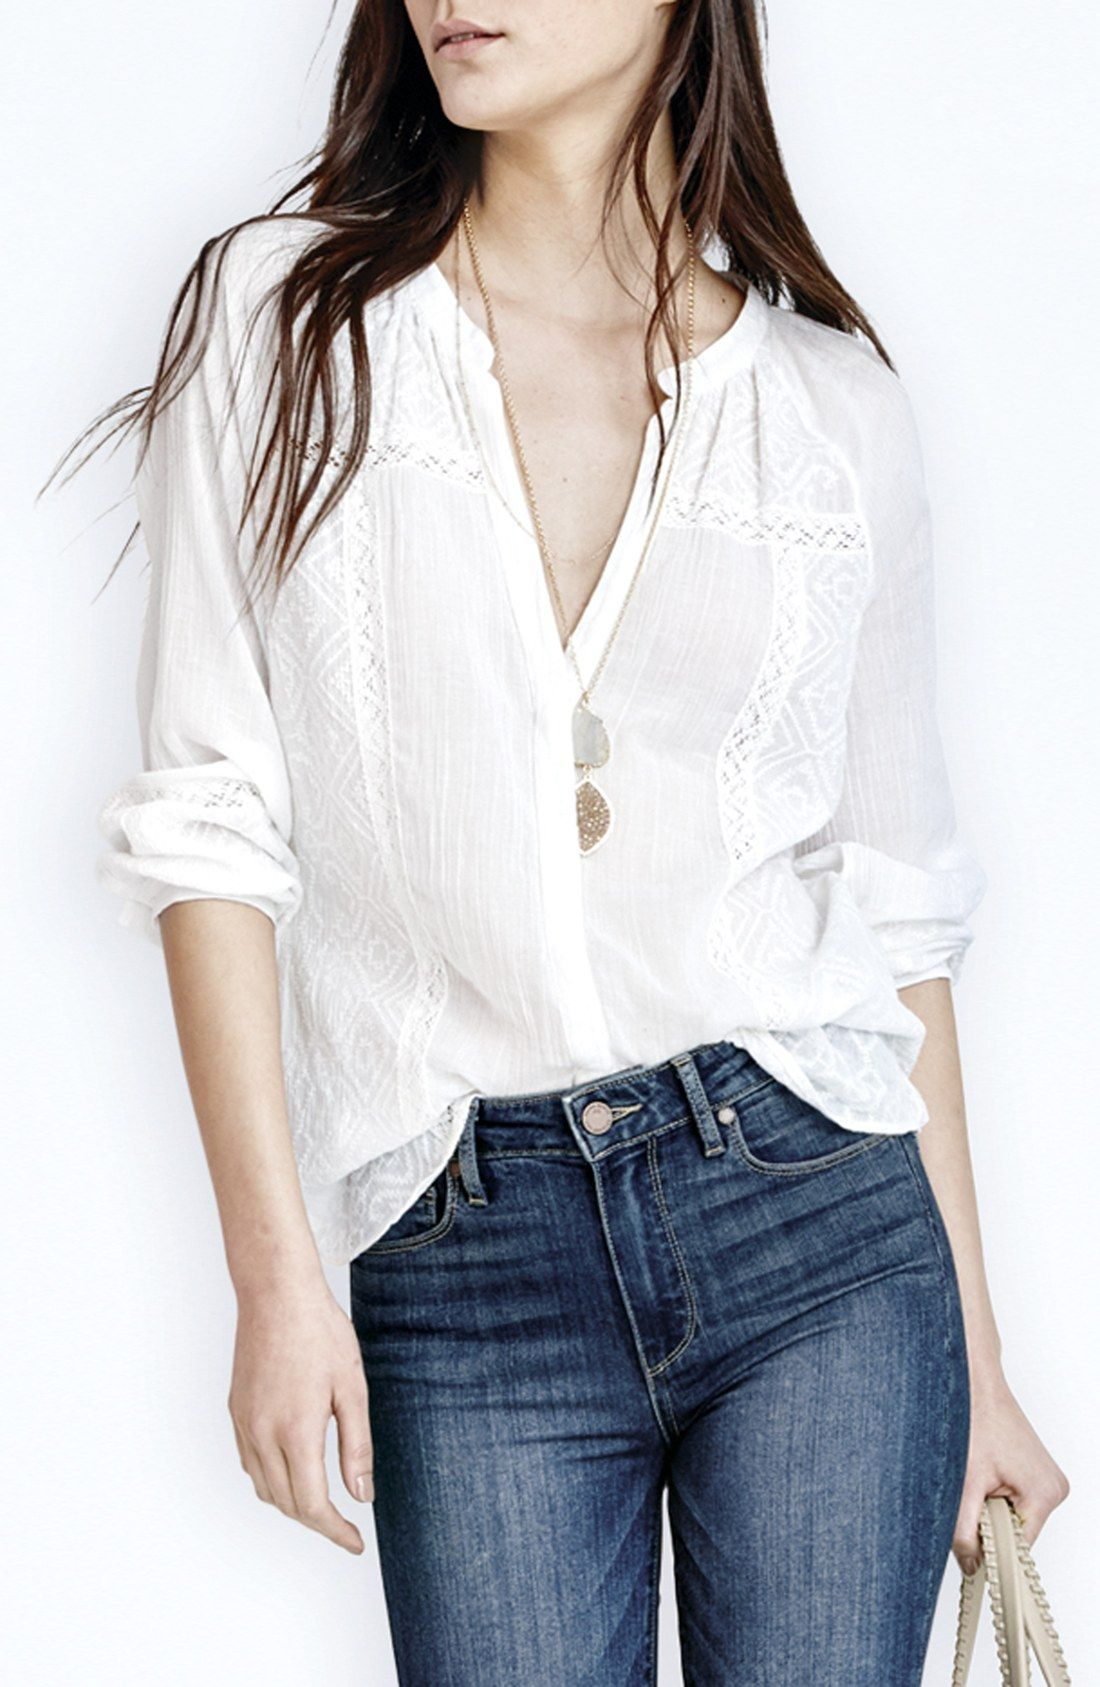 So breezy and versatile! This embroidered cotton top from Paige Denim will quickly become a wardrobe favorite.